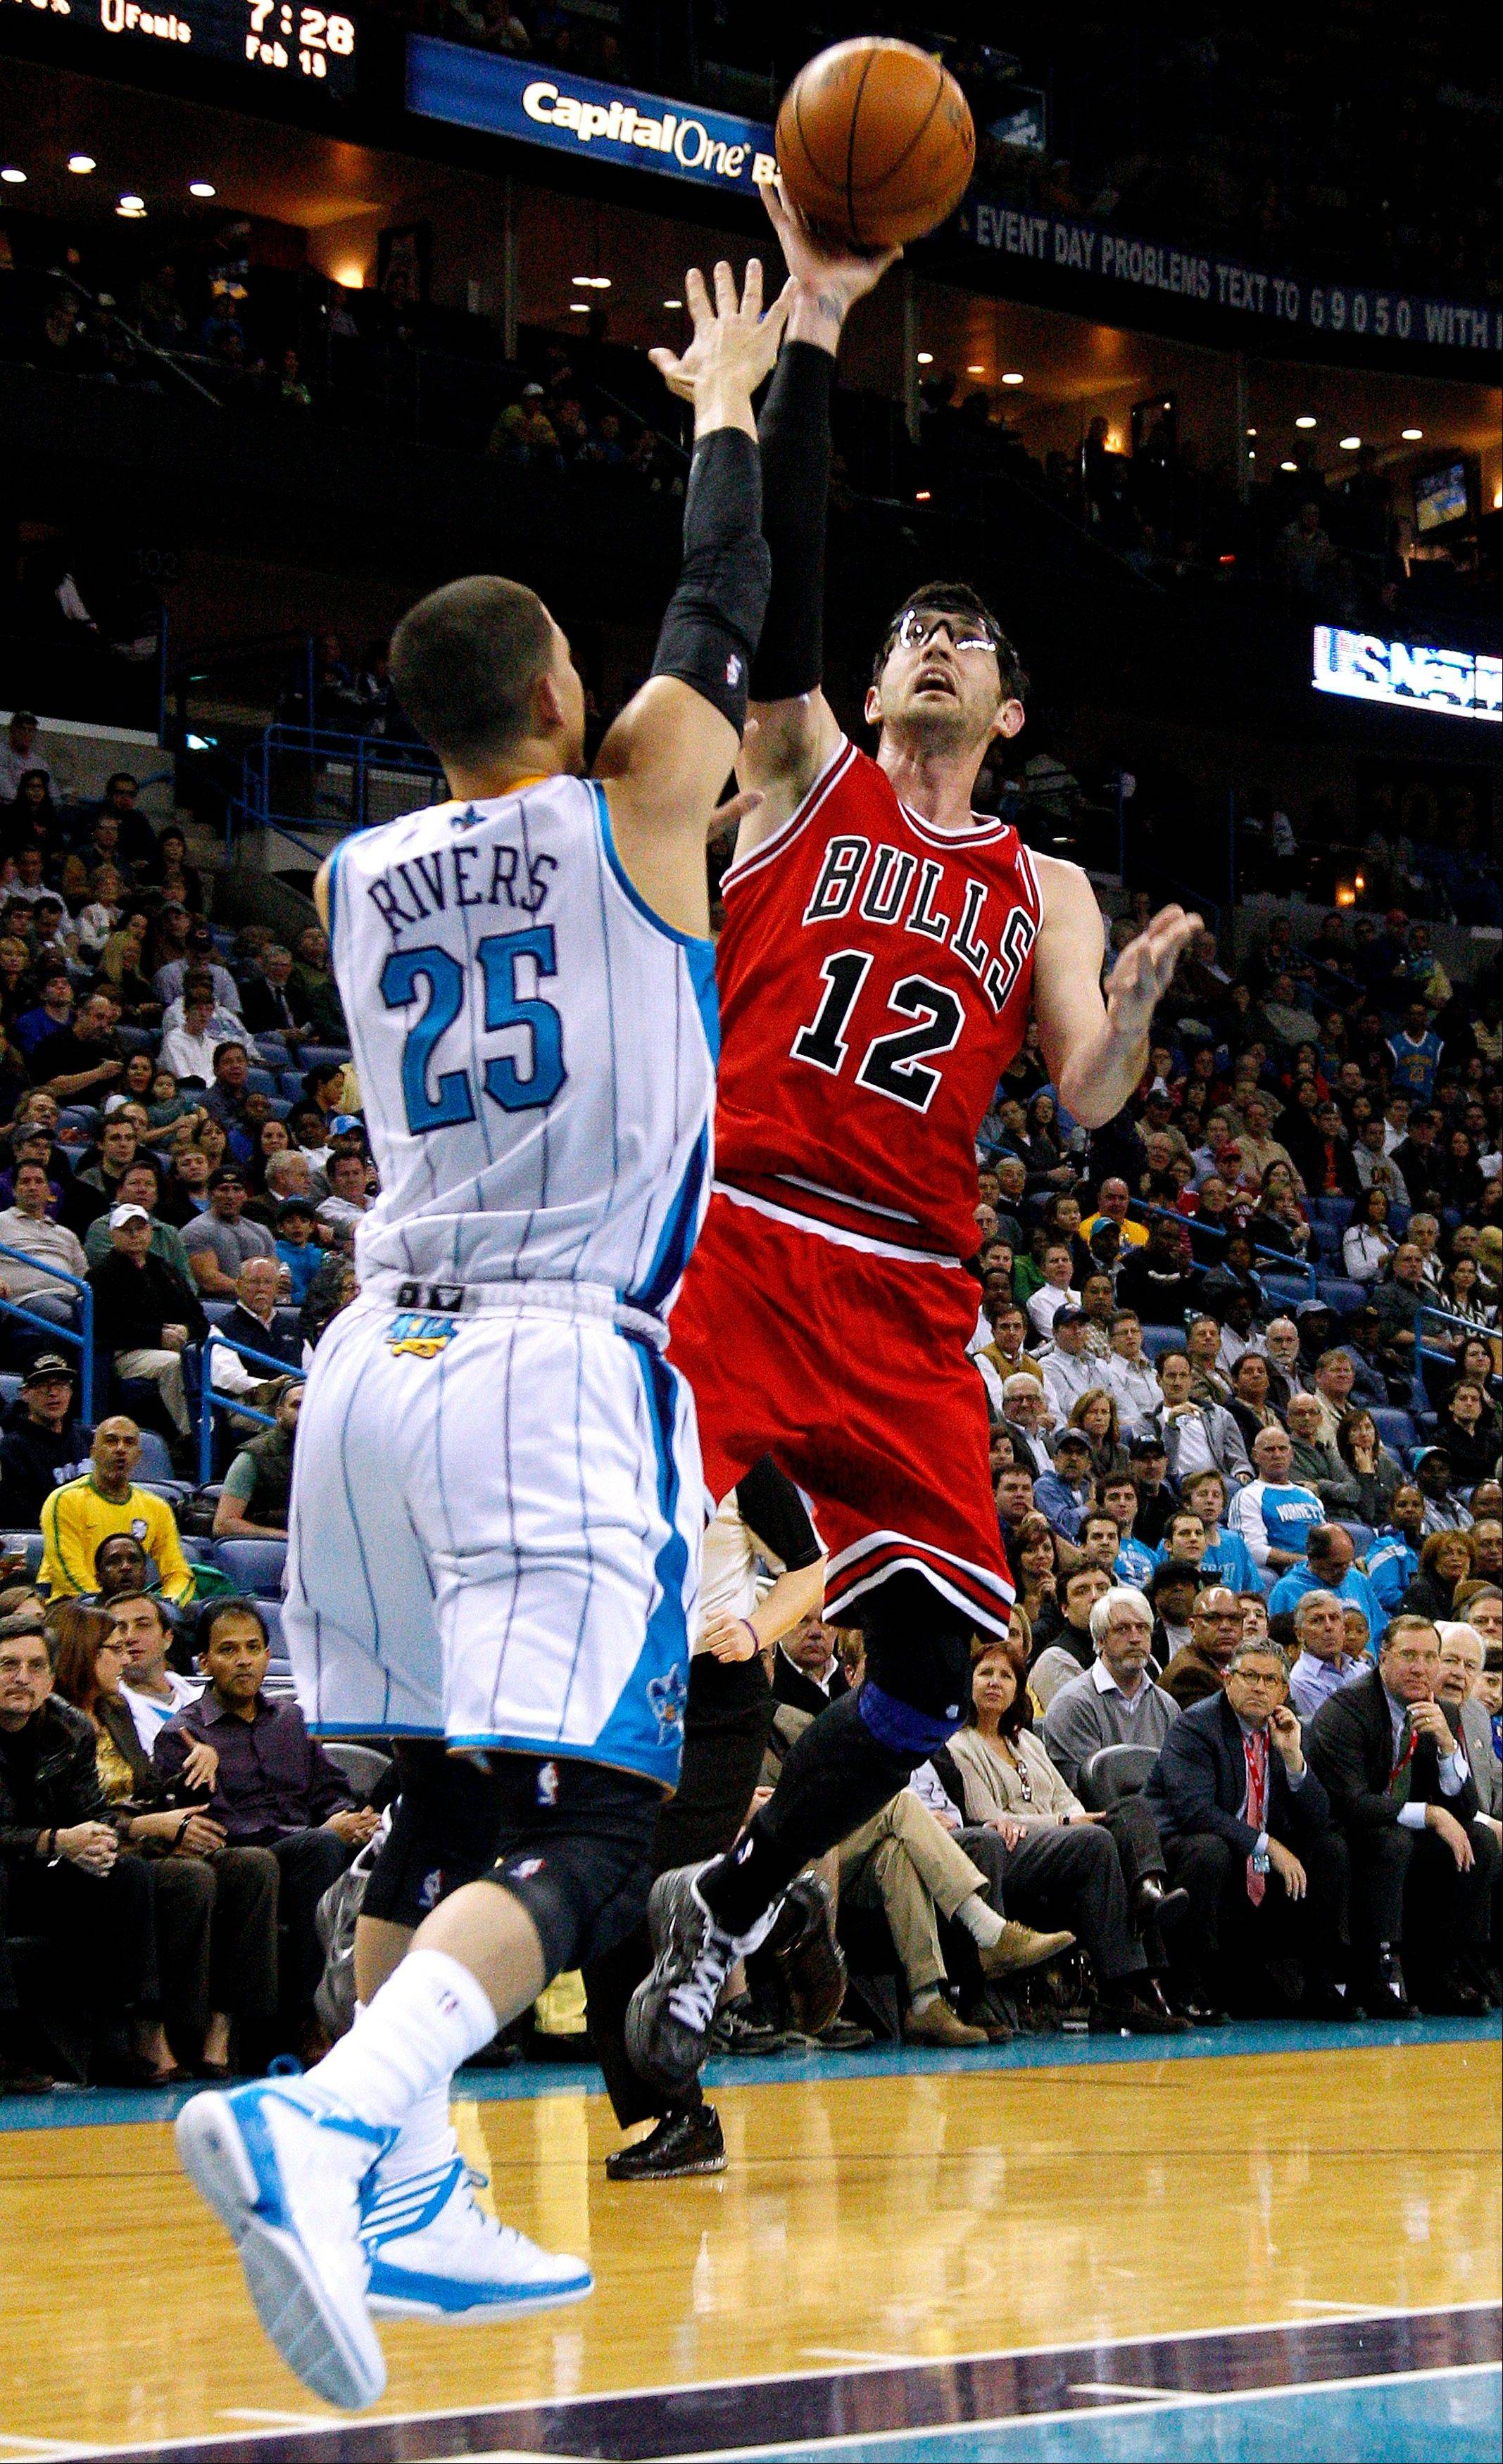 Chicago Bulls guard Kirk Hinrich (12) shoots over New Orleans Hornets guard Austin Rivers (25) during the first half of an NBA basketball game in New Orleans, Tuesday, Feb. 19, 2013.